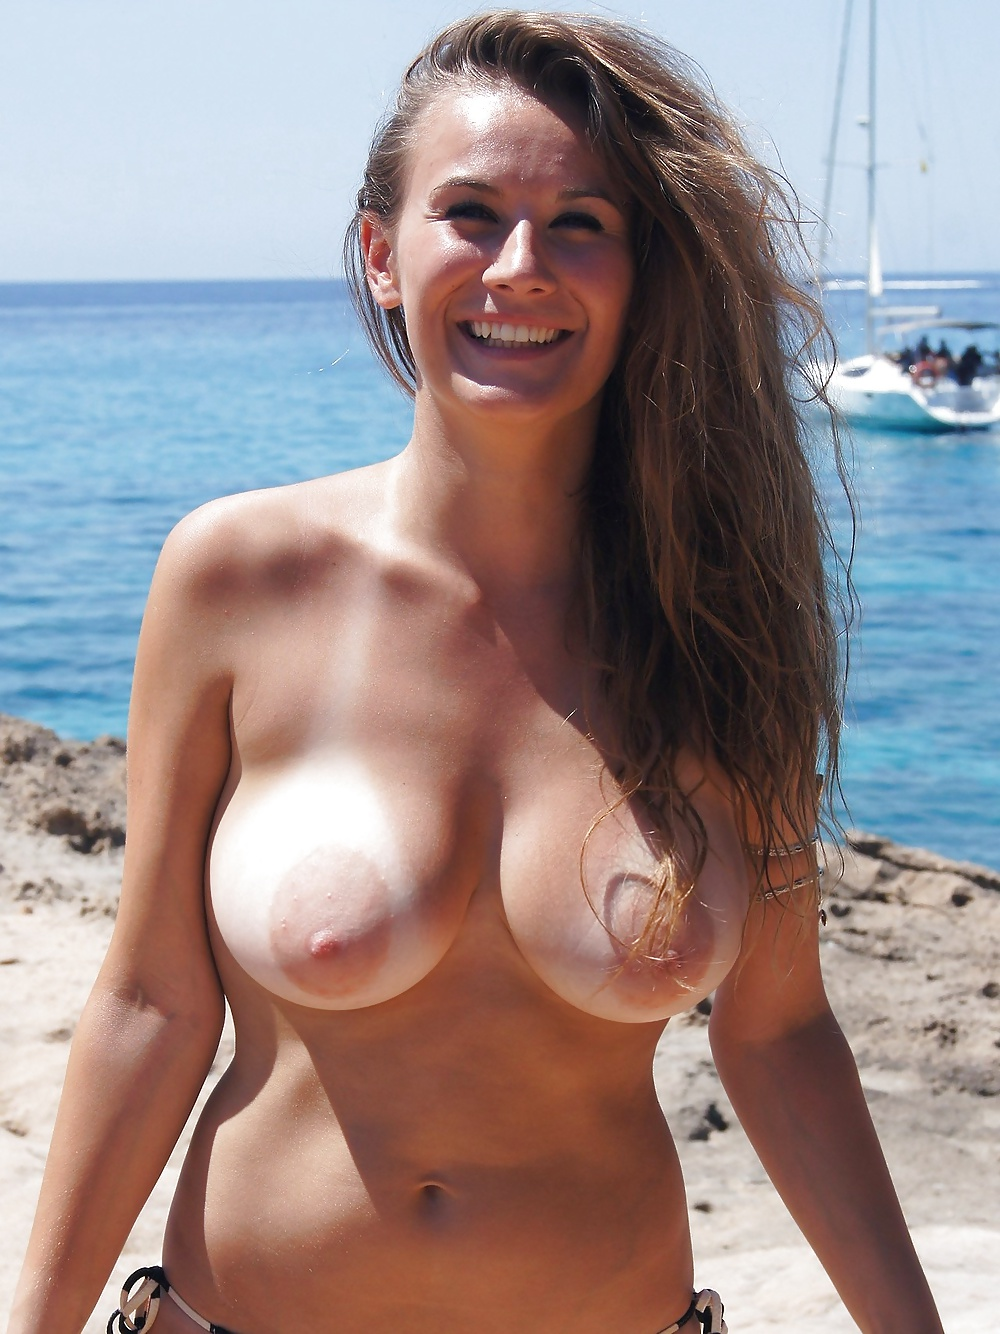 bare-tits-tan-lines-find-naked-images-of-young-girls